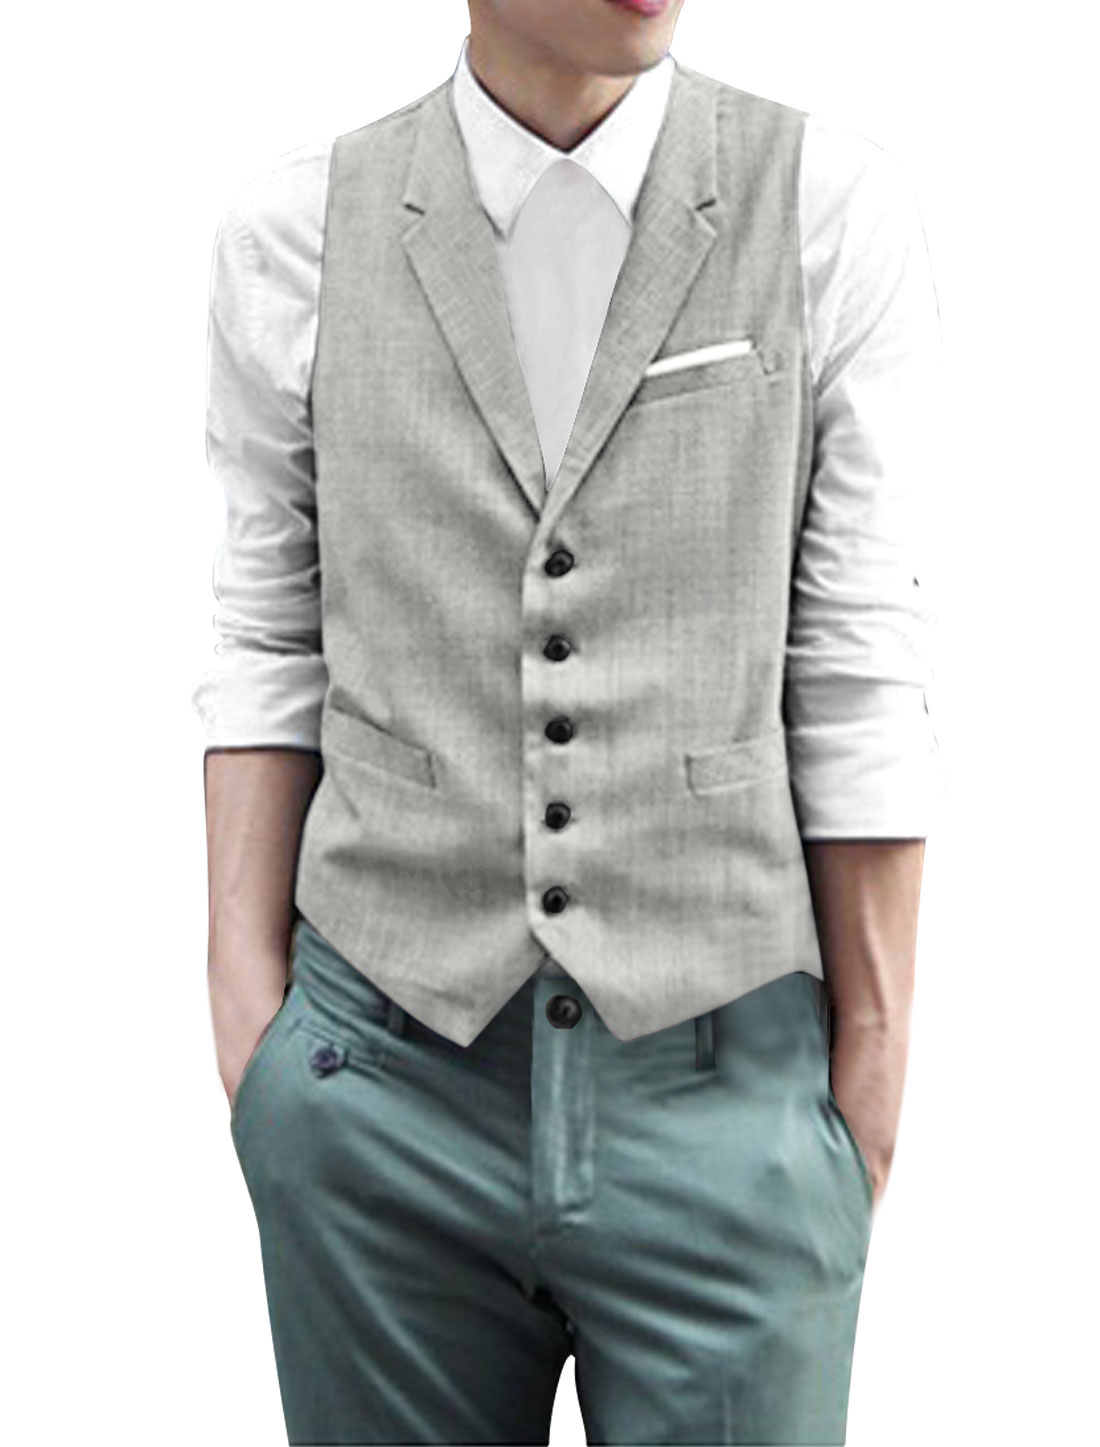 Men Chic Deep V Neck Plaids Pattern Lining Vest Gray M